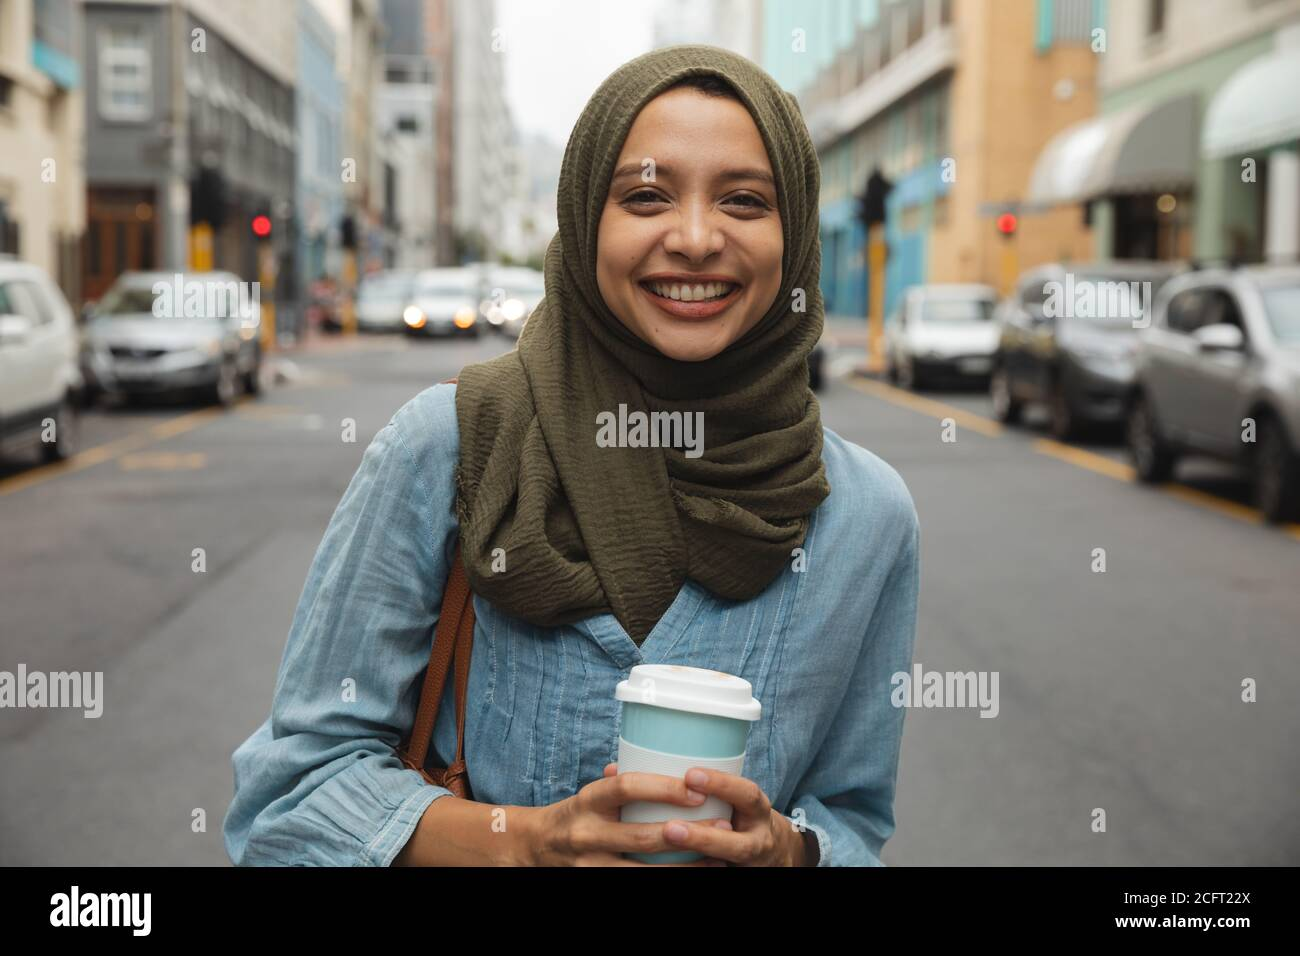 Portrait of woman in hijab with coffee cup smiling on the street Stock Photo